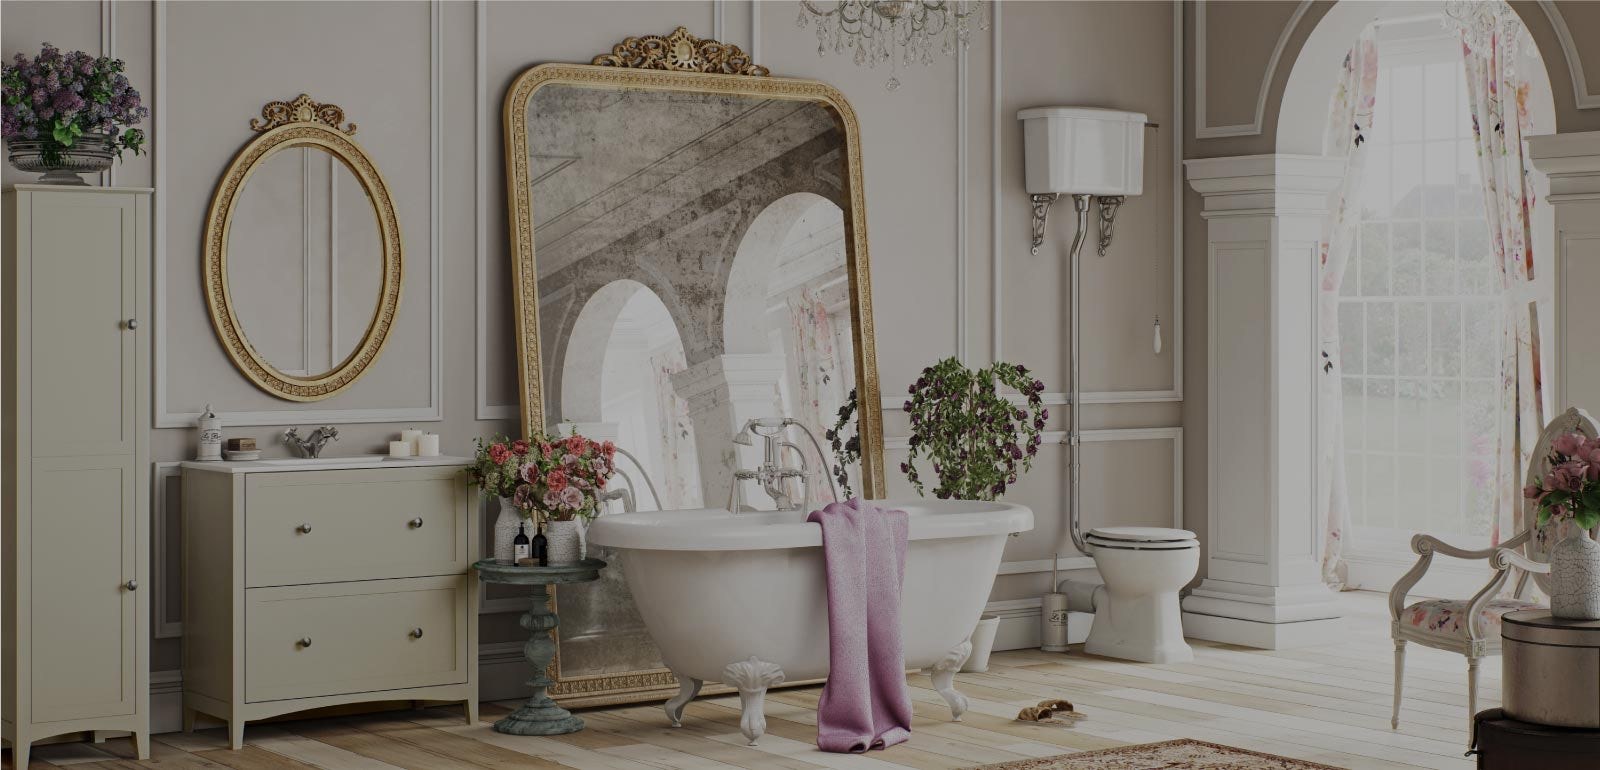 Win a wedding day bathroom makeover with VictoriaPlum.com